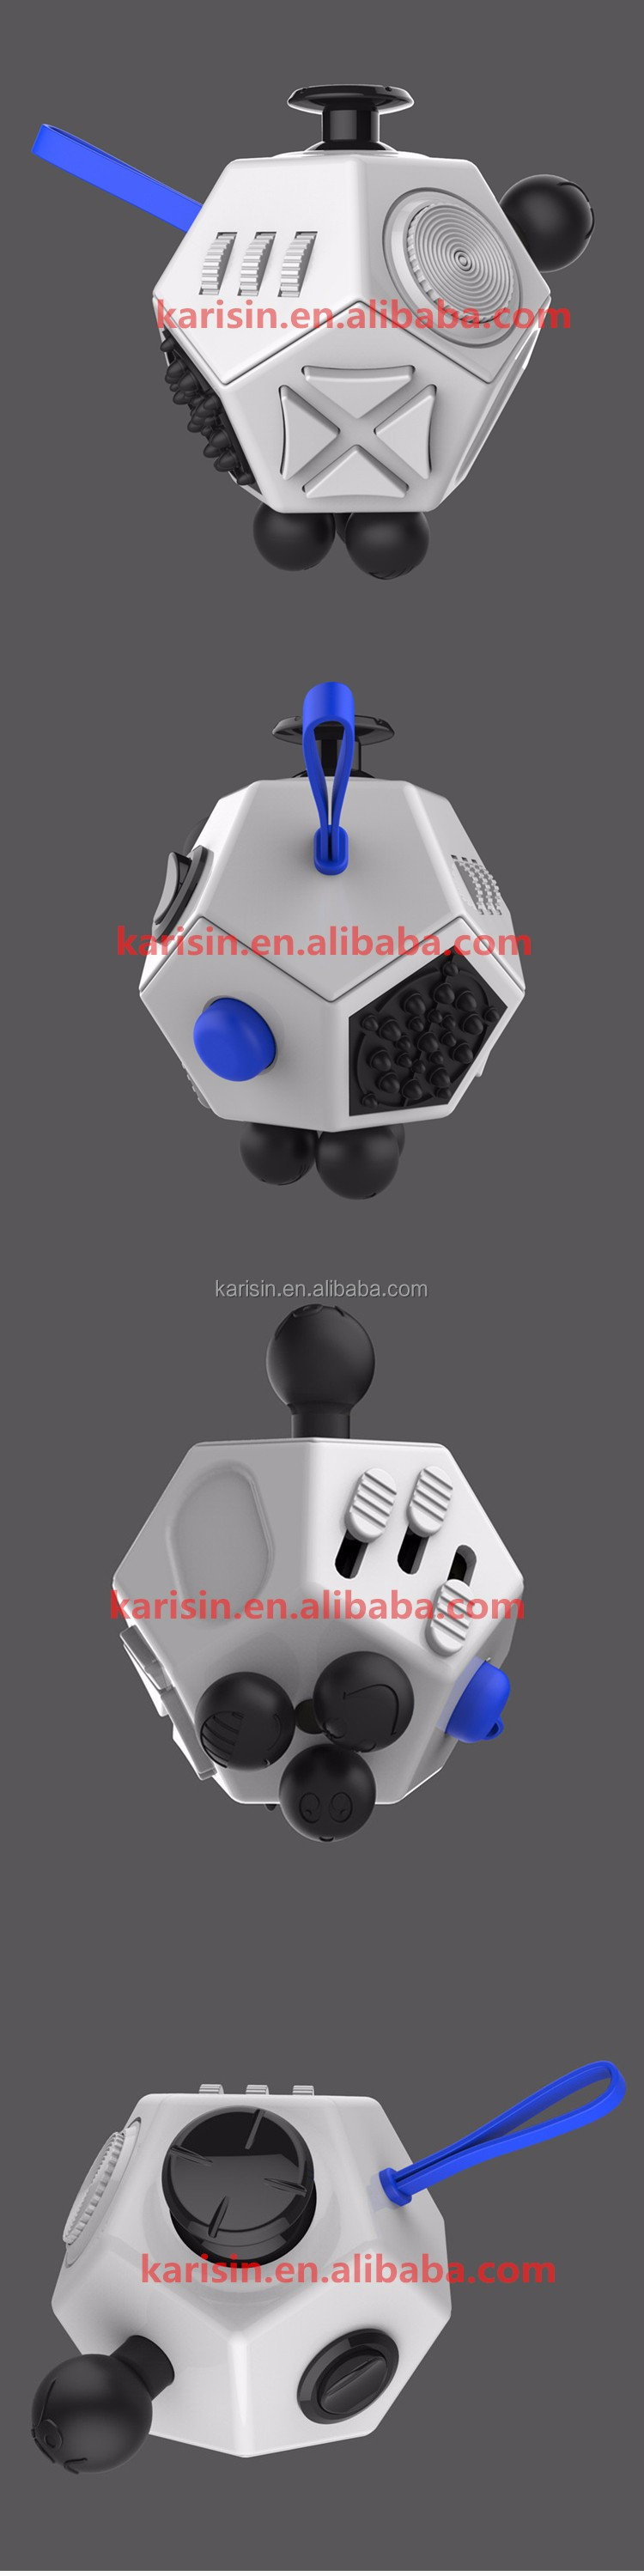 Squeeze Fun Gifts anti stress Fidget cube 12 sided dice shenzhen fidget cube for Kids & Adult